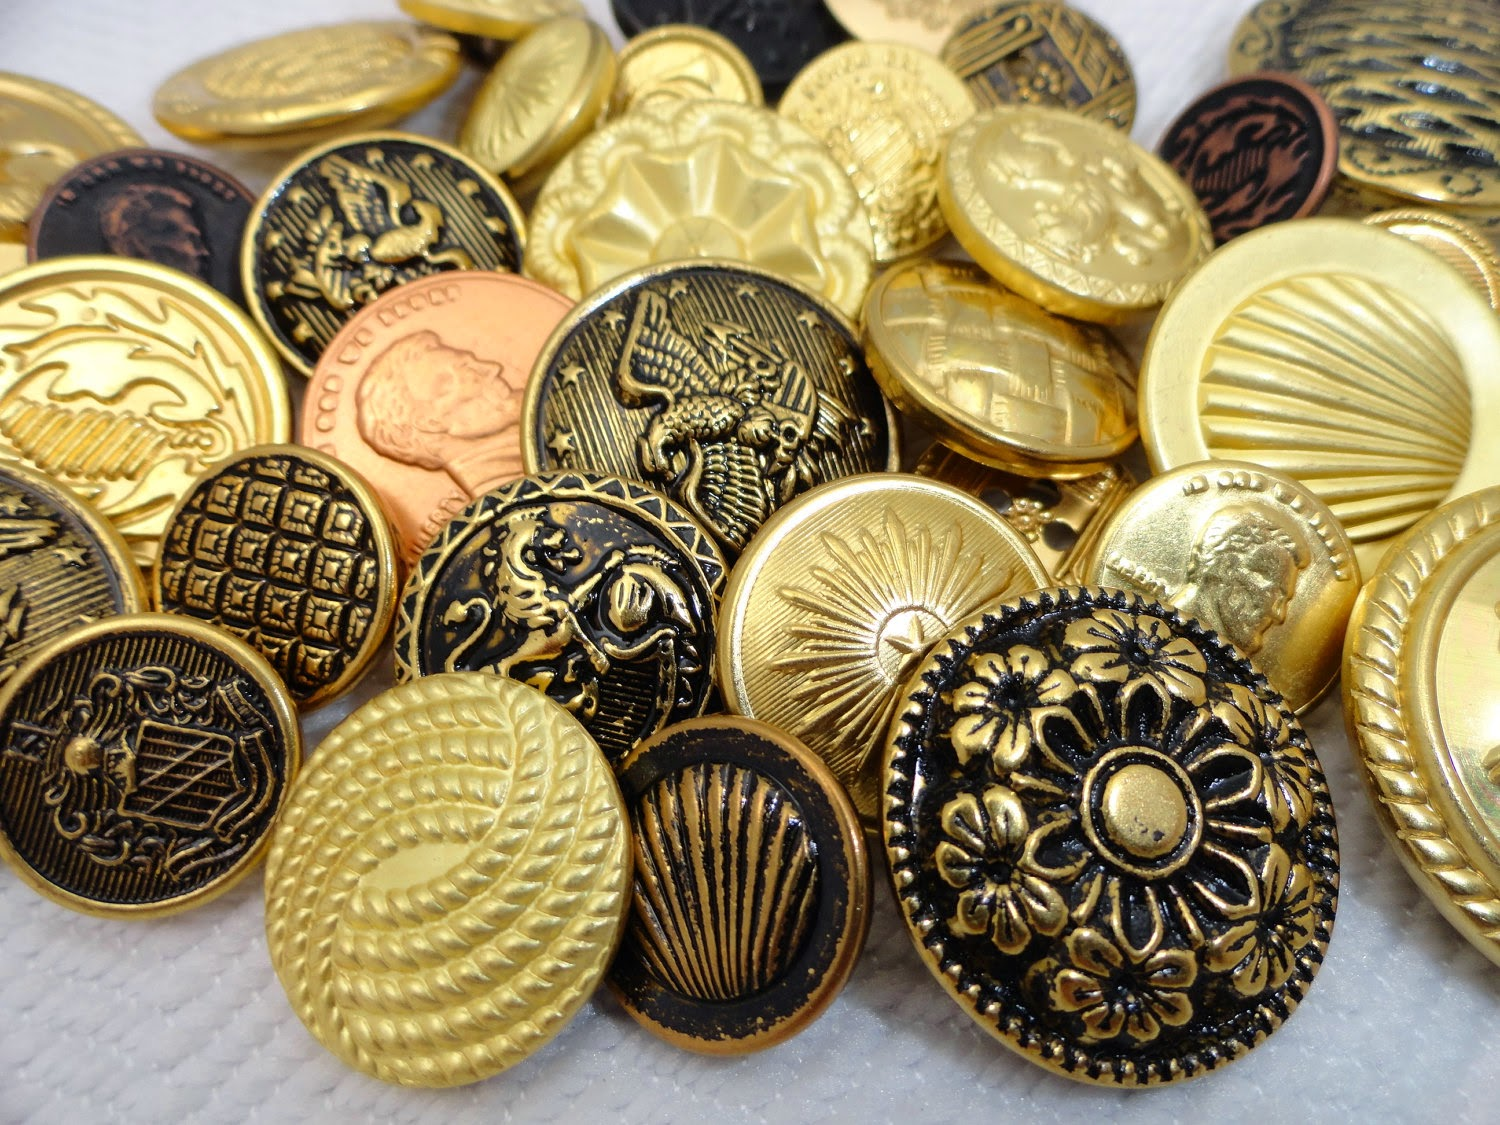 Dating old metal buttons